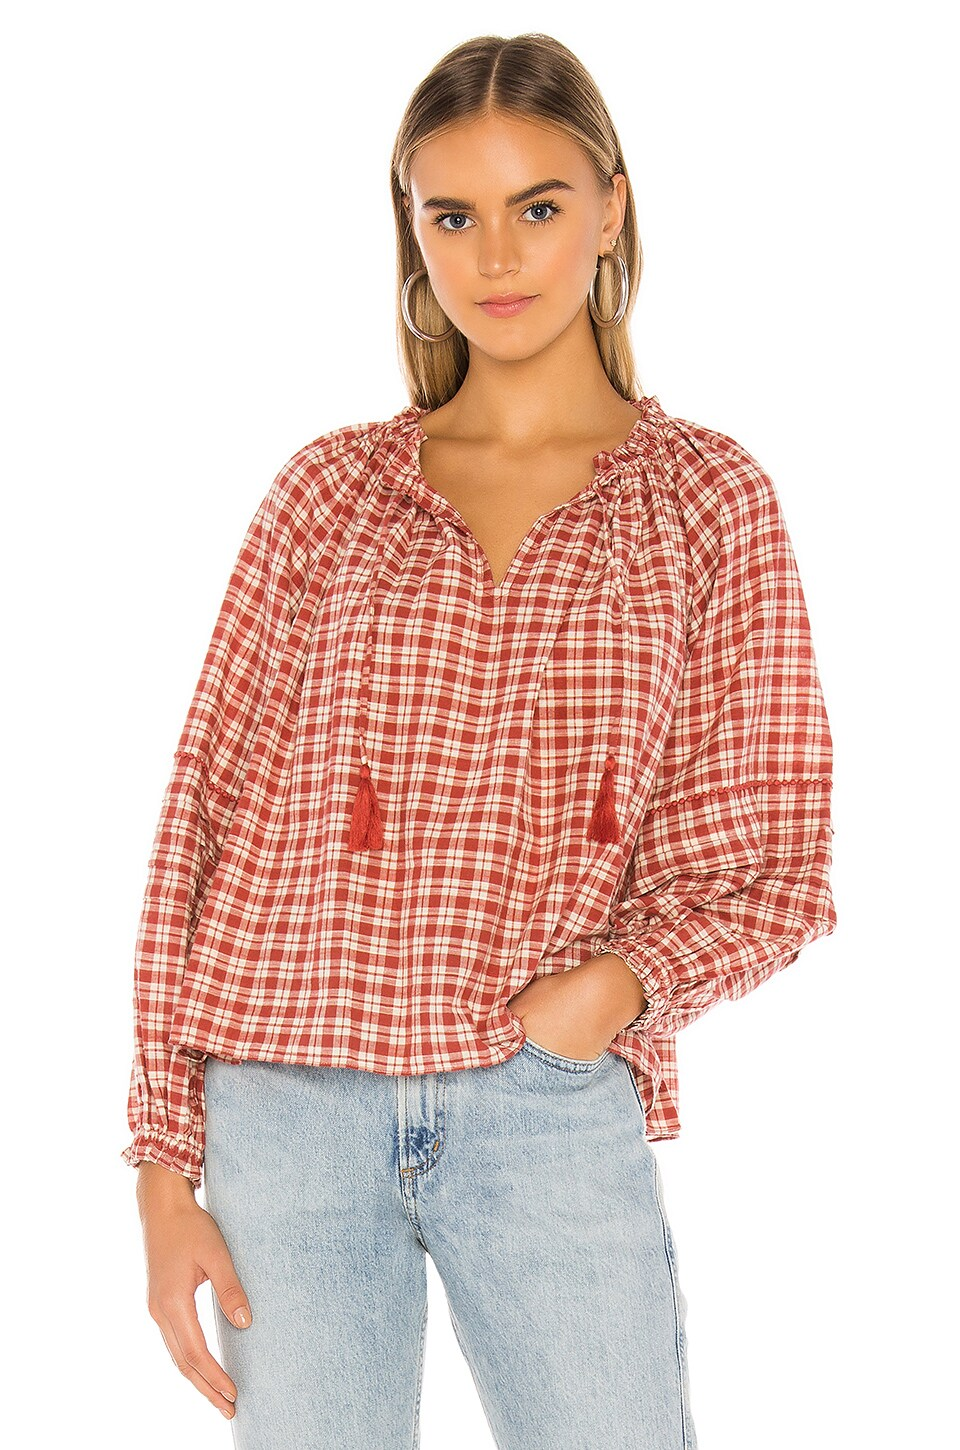 The Great The Study Blouse in Park Plaid